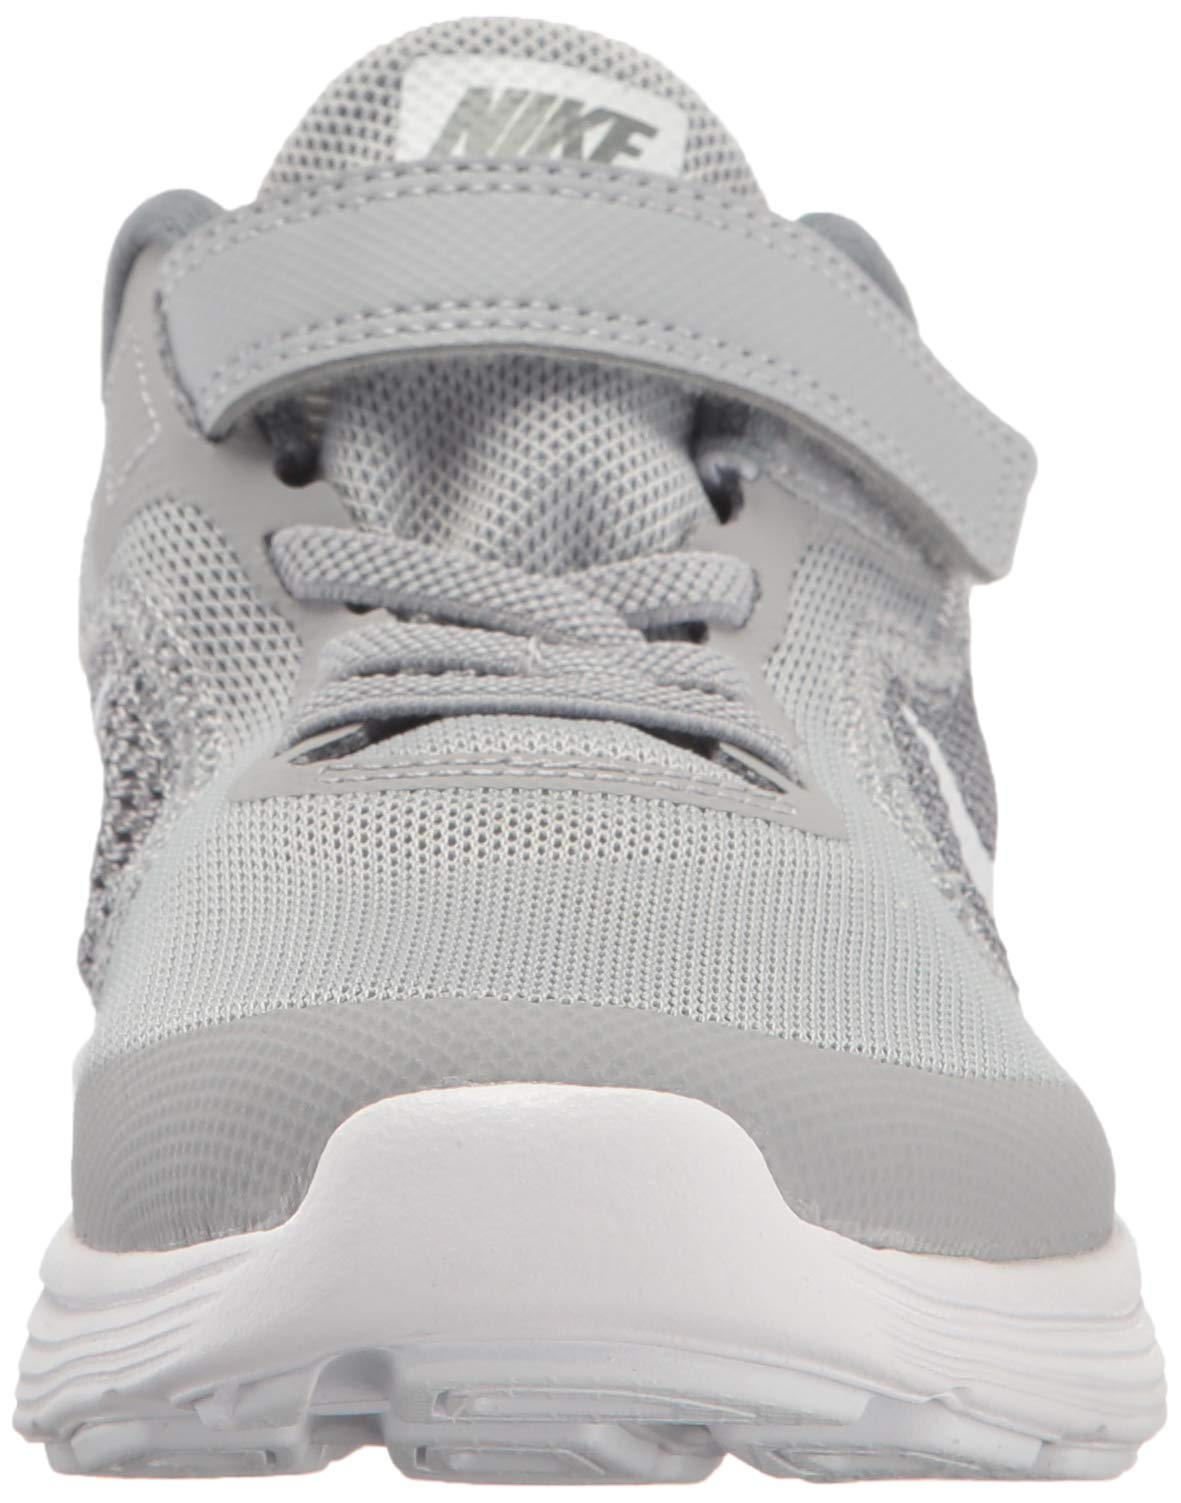 NIKE Kids' Revolution 3 (Psv) Running-Shoes, Wolf Grey/White/Cool Grey, 1 M US Little Kid by Nike (Image #4)